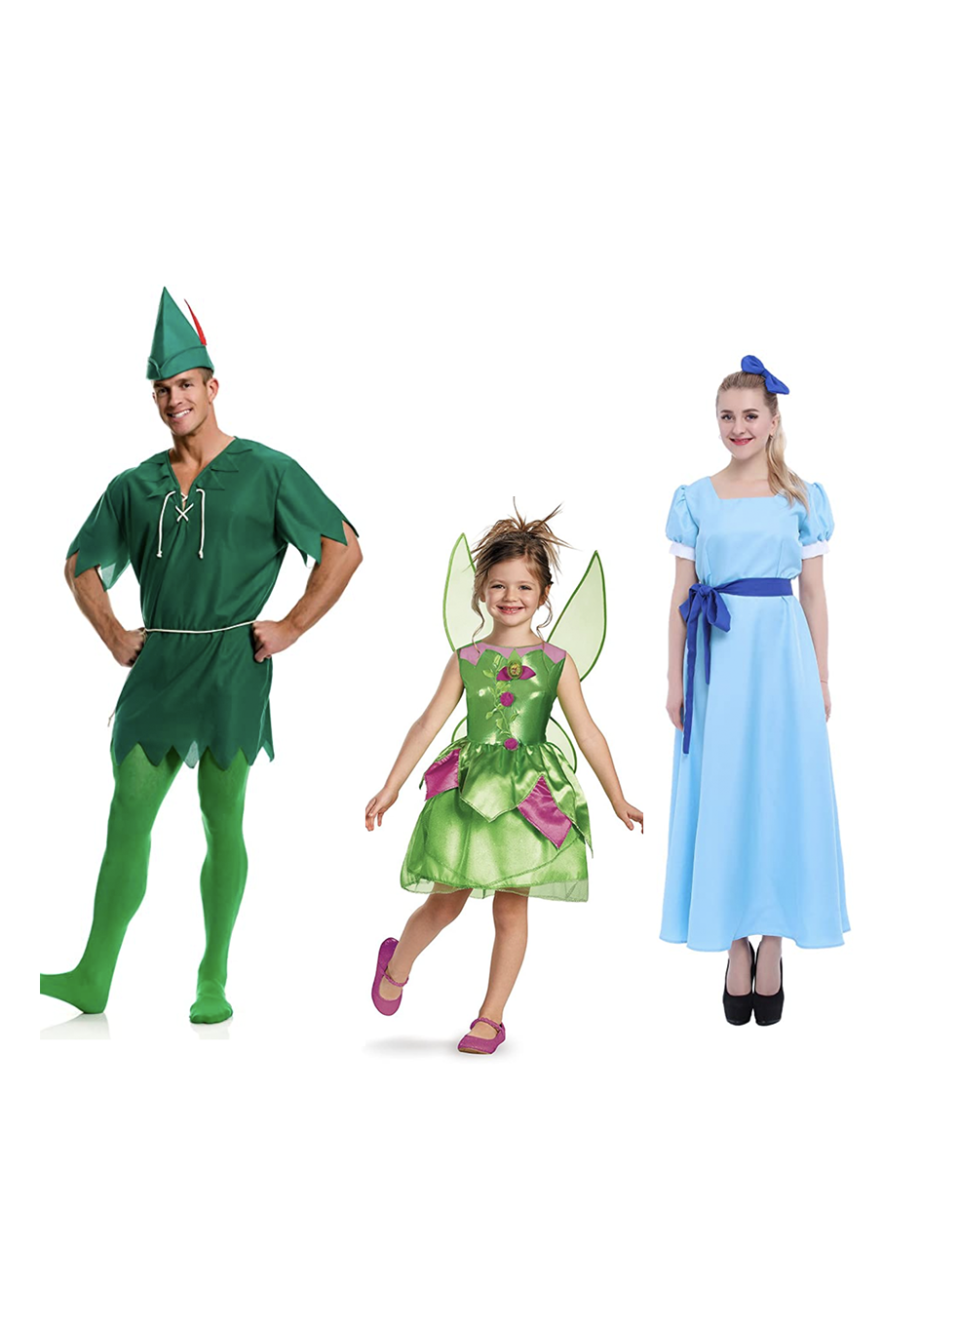 """<p>This costume is perfect for families or a trio of besties. With a little bit of creativity — or some pixie dust — you could even DIY it. </p><p><a class=""""link rapid-noclick-resp"""" href=""""https://www.amazon.com/Largemouth-Unisex-Peter-Pan-Costume/dp/B0147LJK6M/?tag=syn-yahoo-20&ascsubtag=%5Bartid%7C10055.g.28073110%5Bsrc%7Cyahoo-us"""" rel=""""nofollow noopener"""" target=""""_blank"""" data-ylk=""""slk:SHOP PETER PAN COSTUME"""">SHOP PETER PAN COSTUME</a></p><p><a class=""""link rapid-noclick-resp"""" href=""""https://www.amazon.com/Disney-Fairies-Tinker-Classic-Costume/dp/B00CF0MG46/?tag=syn-yahoo-20&ascsubtag=%5Bartid%7C10055.g.28073110%5Bsrc%7Cyahoo-us"""" rel=""""nofollow noopener"""" target=""""_blank"""" data-ylk=""""slk:SHOP TINKERBELL COSTUME"""">SHOP TINKERBELL COSTUME</a></p><p><a class=""""link rapid-noclick-resp"""" href=""""https://www.amazon.com/ROLECOS-Princess-Dresses-Halloween-Cosplay/dp/B00JR0U8BA/?tag=syn-yahoo-20&ascsubtag=%5Bartid%7C10055.g.28073110%5Bsrc%7Cyahoo-us"""" rel=""""nofollow noopener"""" target=""""_blank"""" data-ylk=""""slk:SHOP WENDY COSTUME"""">SHOP WENDY COSTUME</a></p><p><strong>RELATED:</strong> <a href=""""https://www.goodhousekeeping.com/holidays/halloween-ideas/g4771/disney-halloween-costumes/"""" rel=""""nofollow noopener"""" target=""""_blank"""" data-ylk=""""slk:40 Disney Halloween Costumes the Entire Family Will Love"""" class=""""link rapid-noclick-resp"""">40 Disney Halloween Costumes the Entire Family Will Love</a></p>"""